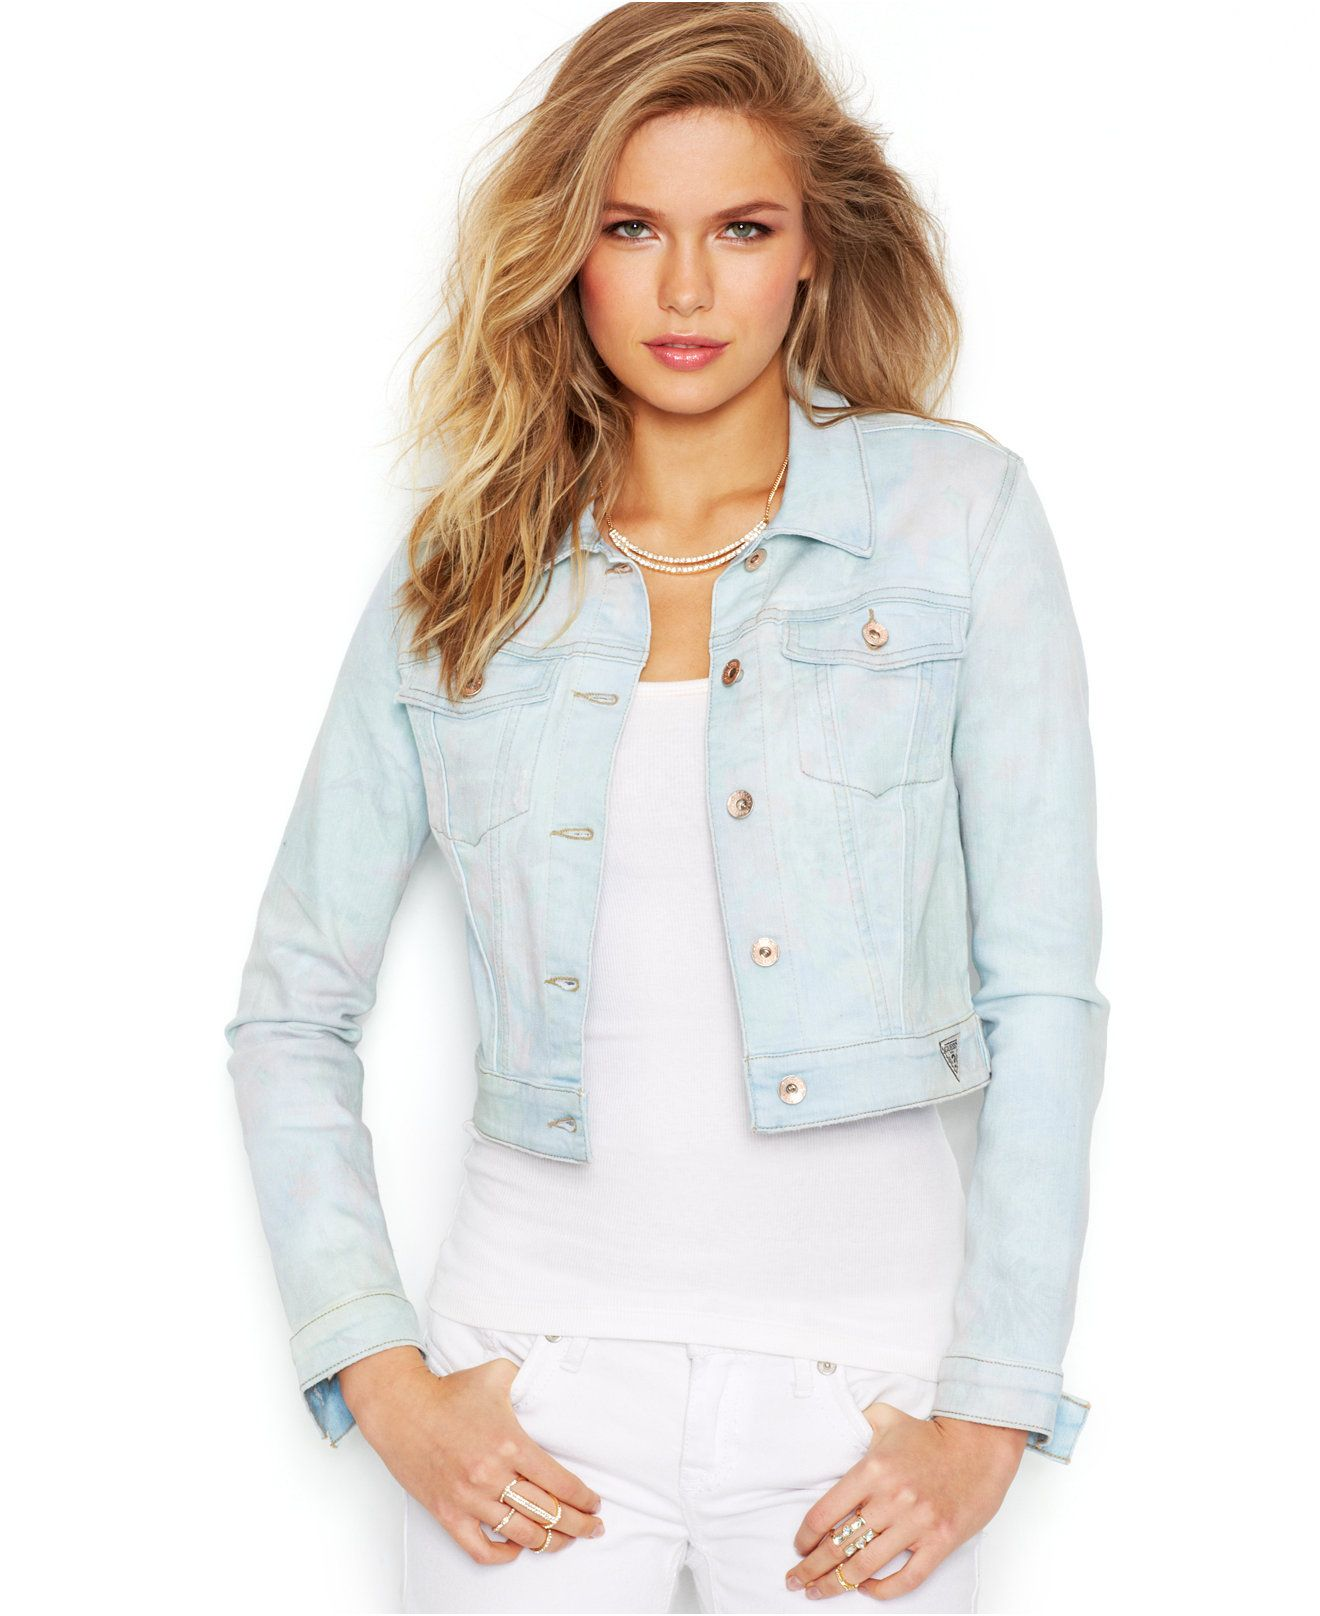 GUESS Cropped Jean Jacket, Light Blue Floral Wash - Jackets ...